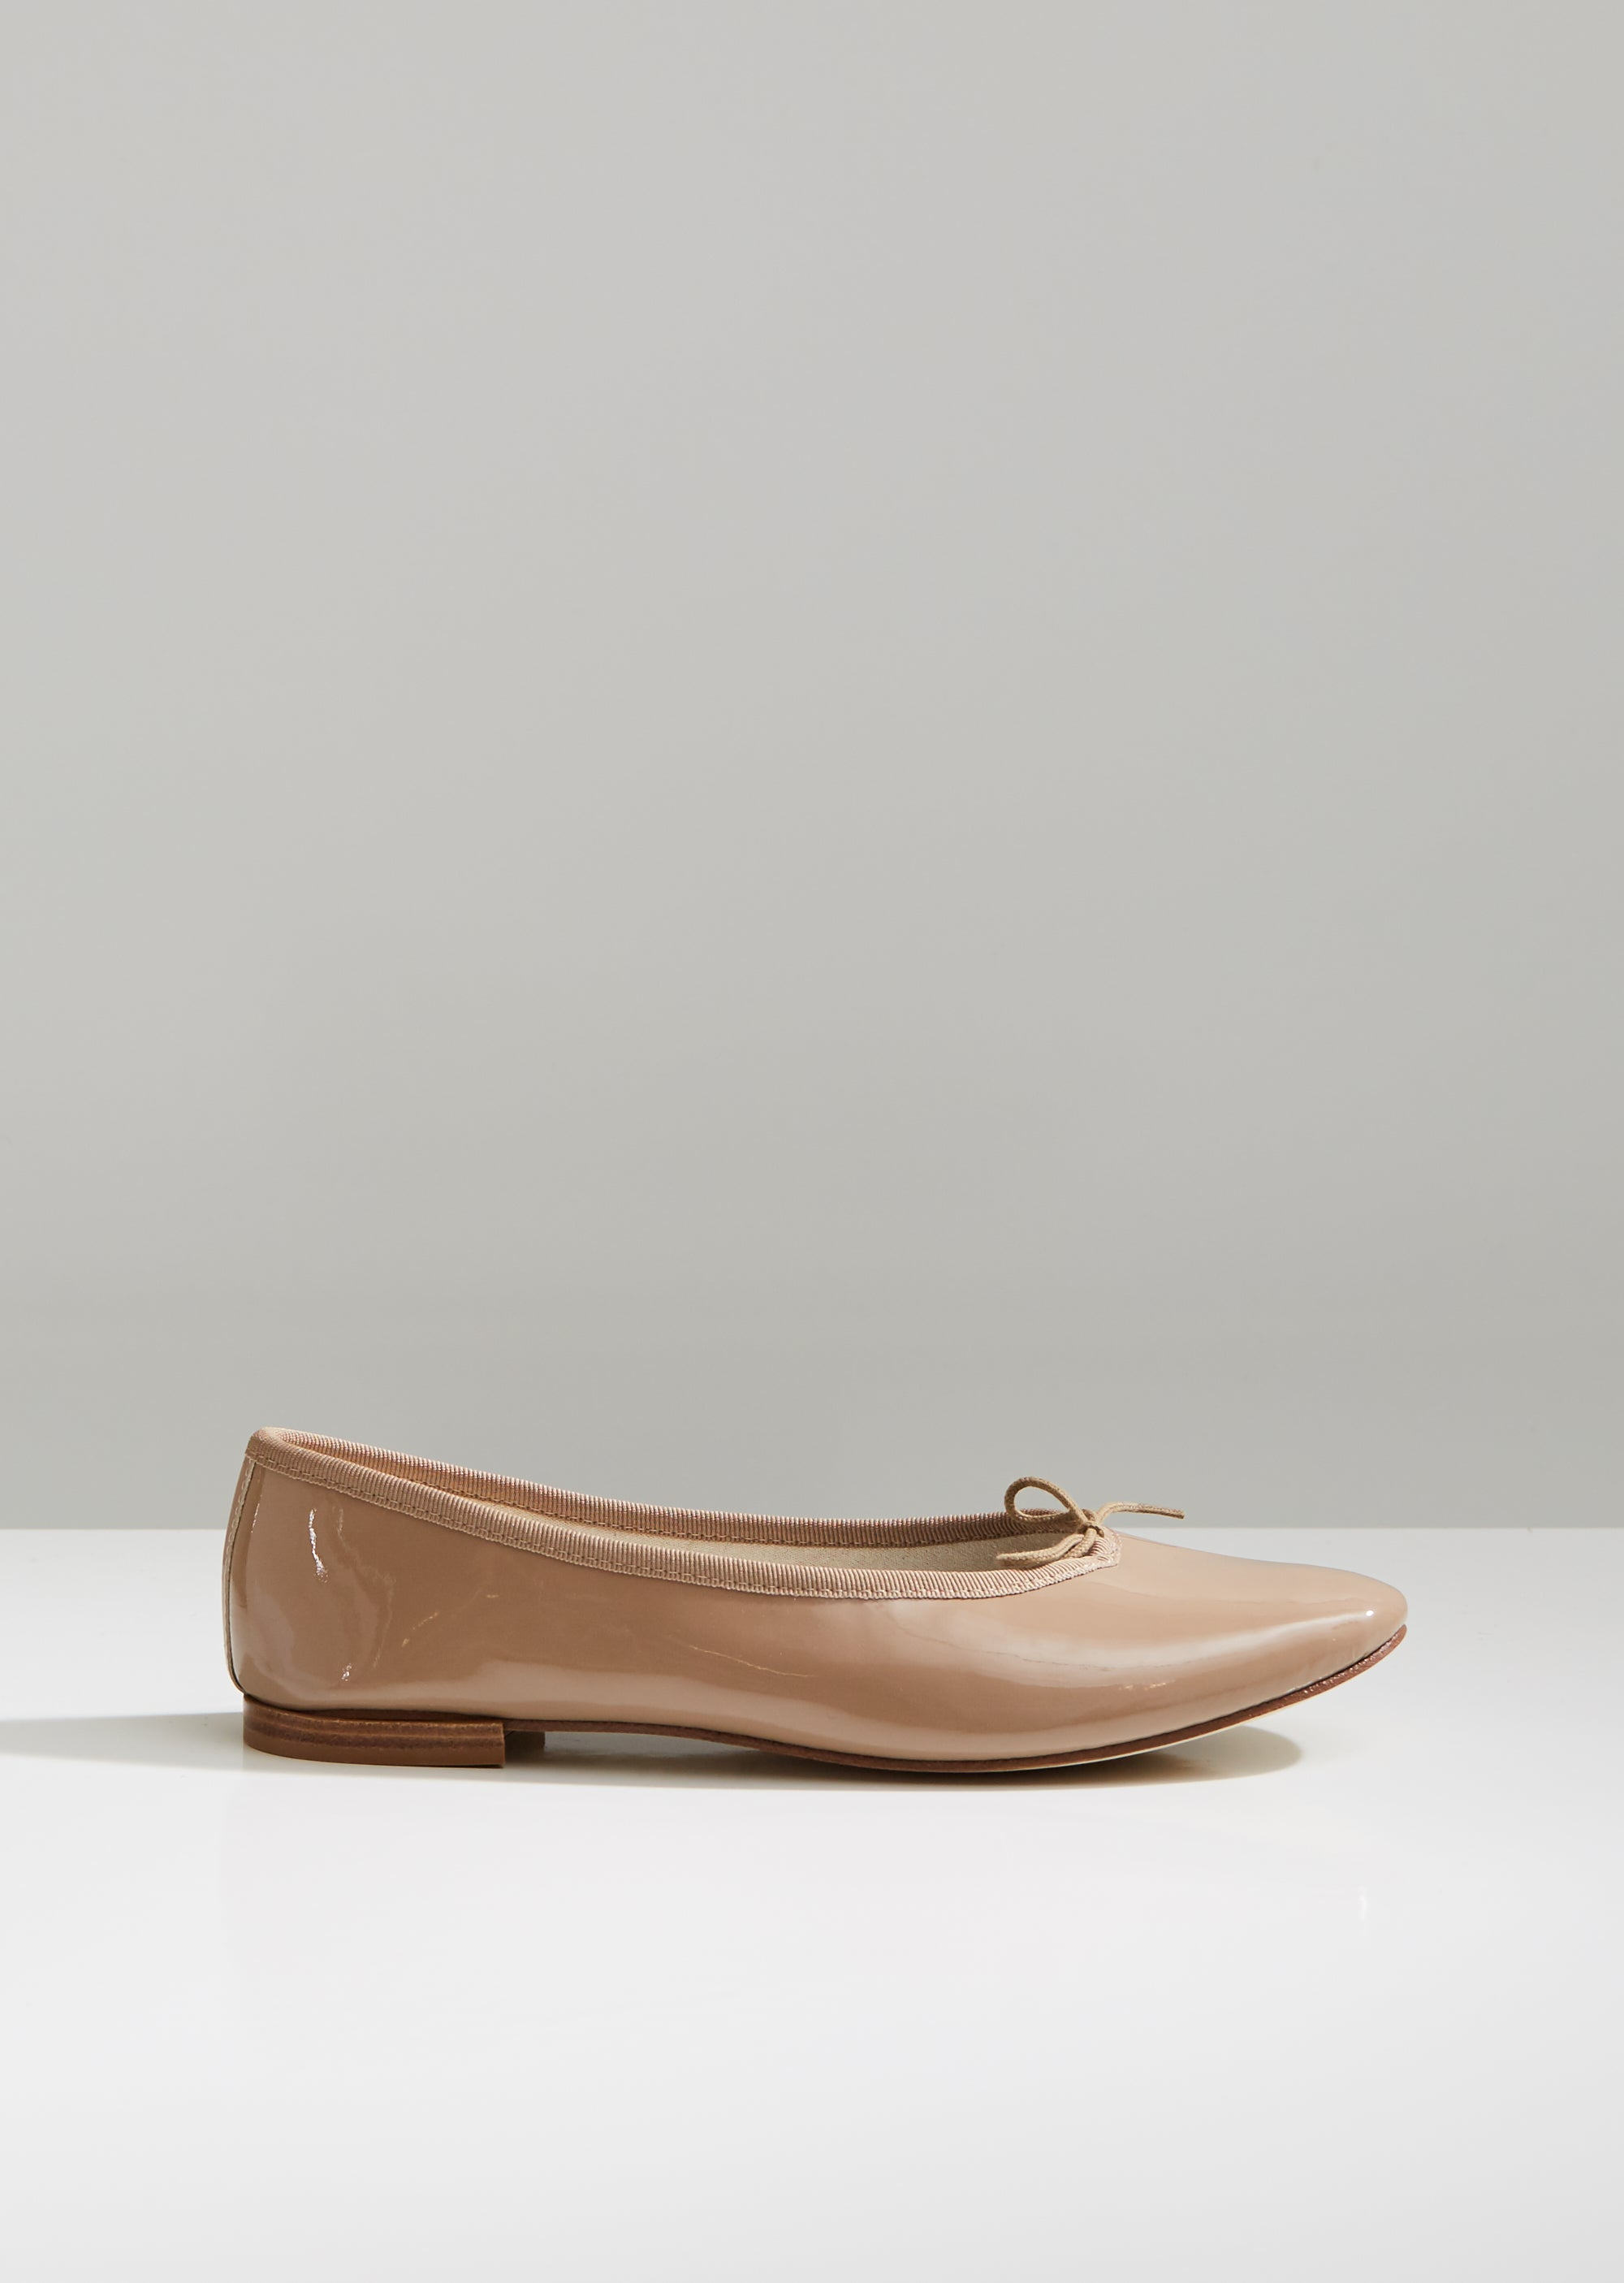 Cendrillon EH Ballet Flats by Repetto